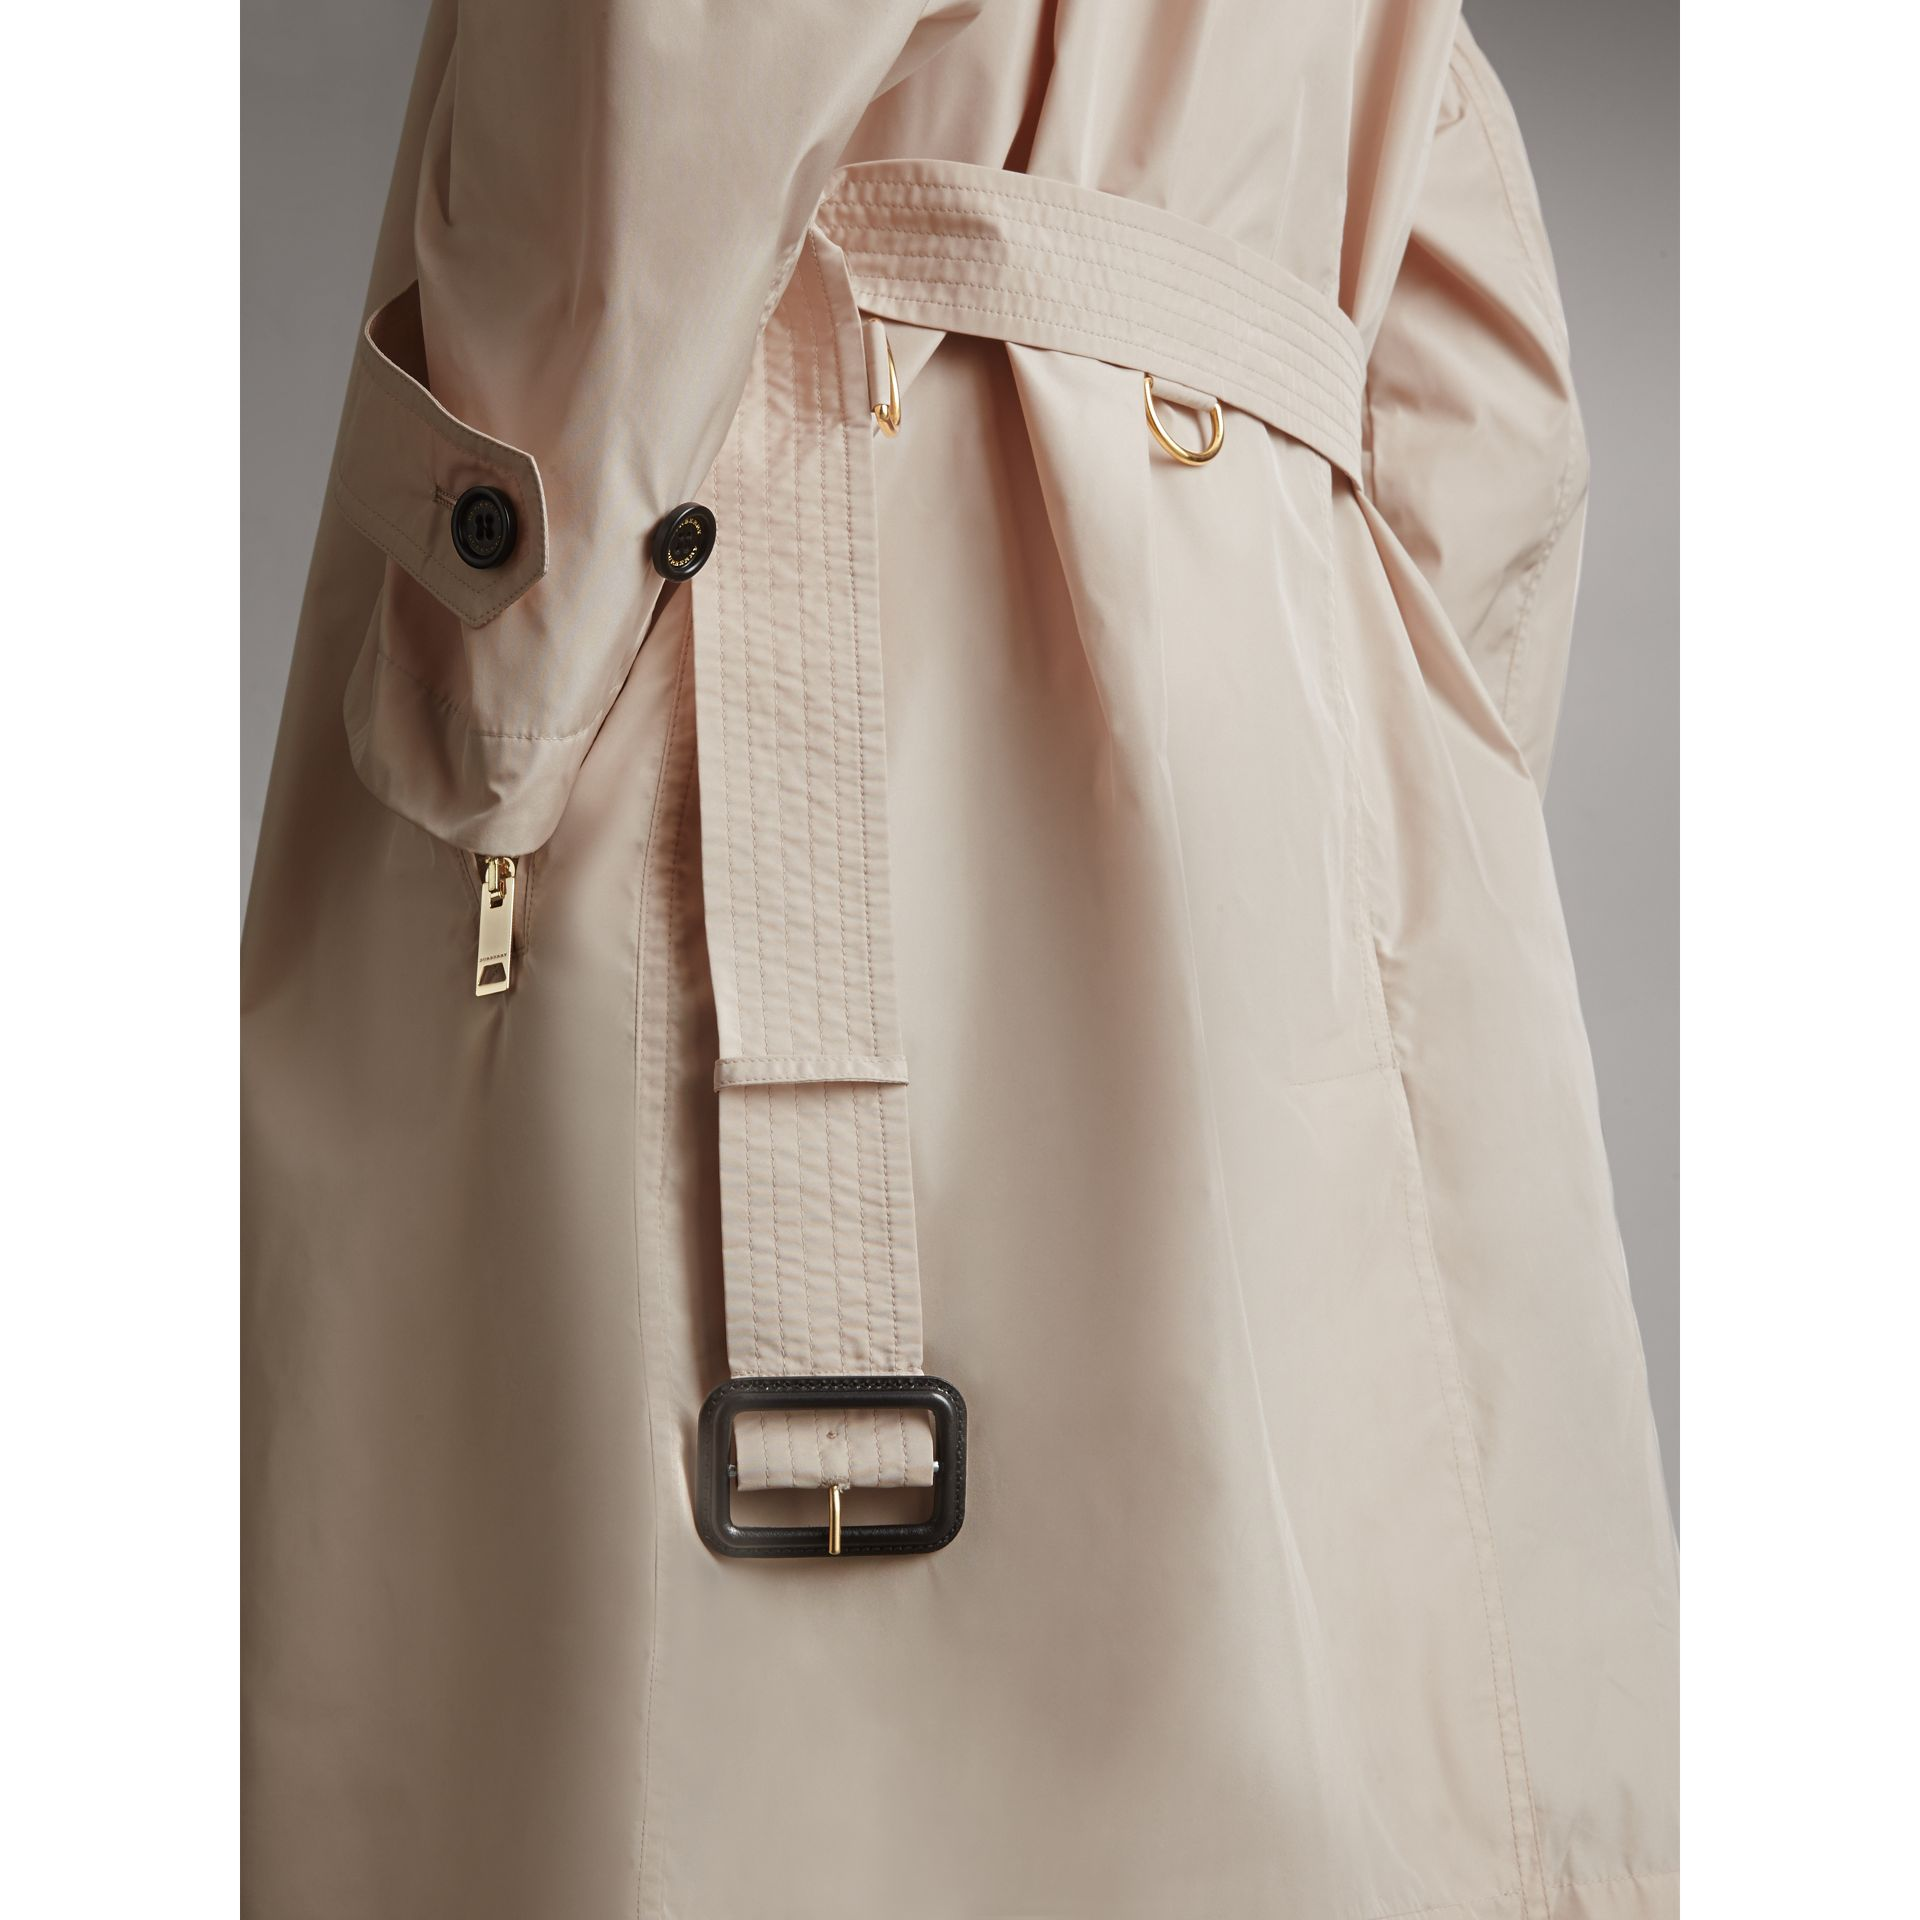 Lightweight Ruched Coat in Antique Taupe Pink - Women | Burberry Singapore - gallery image 2